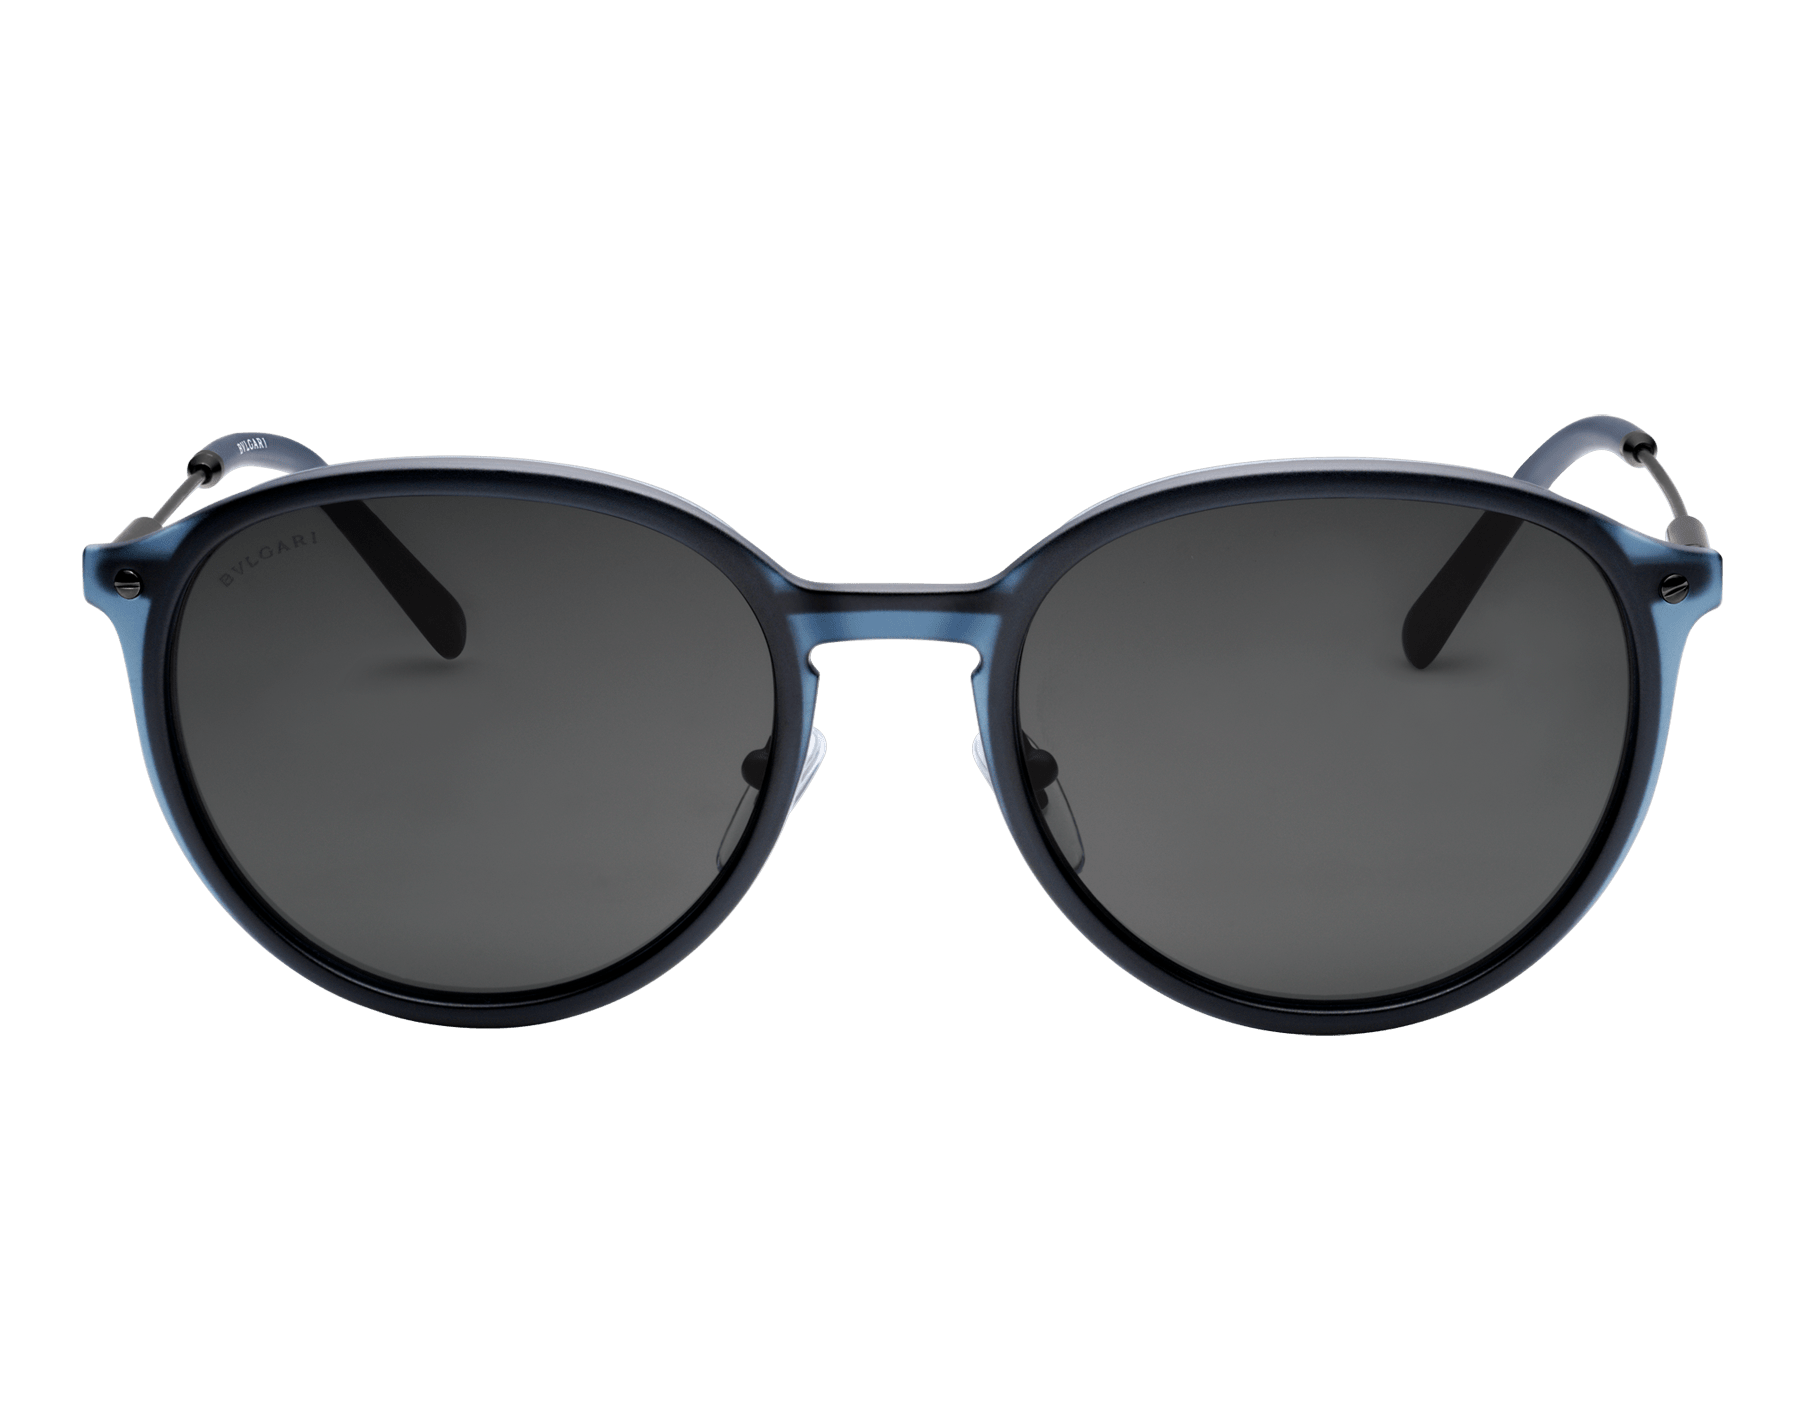 Diagono rounded metal sunglasses. 903558 image 2